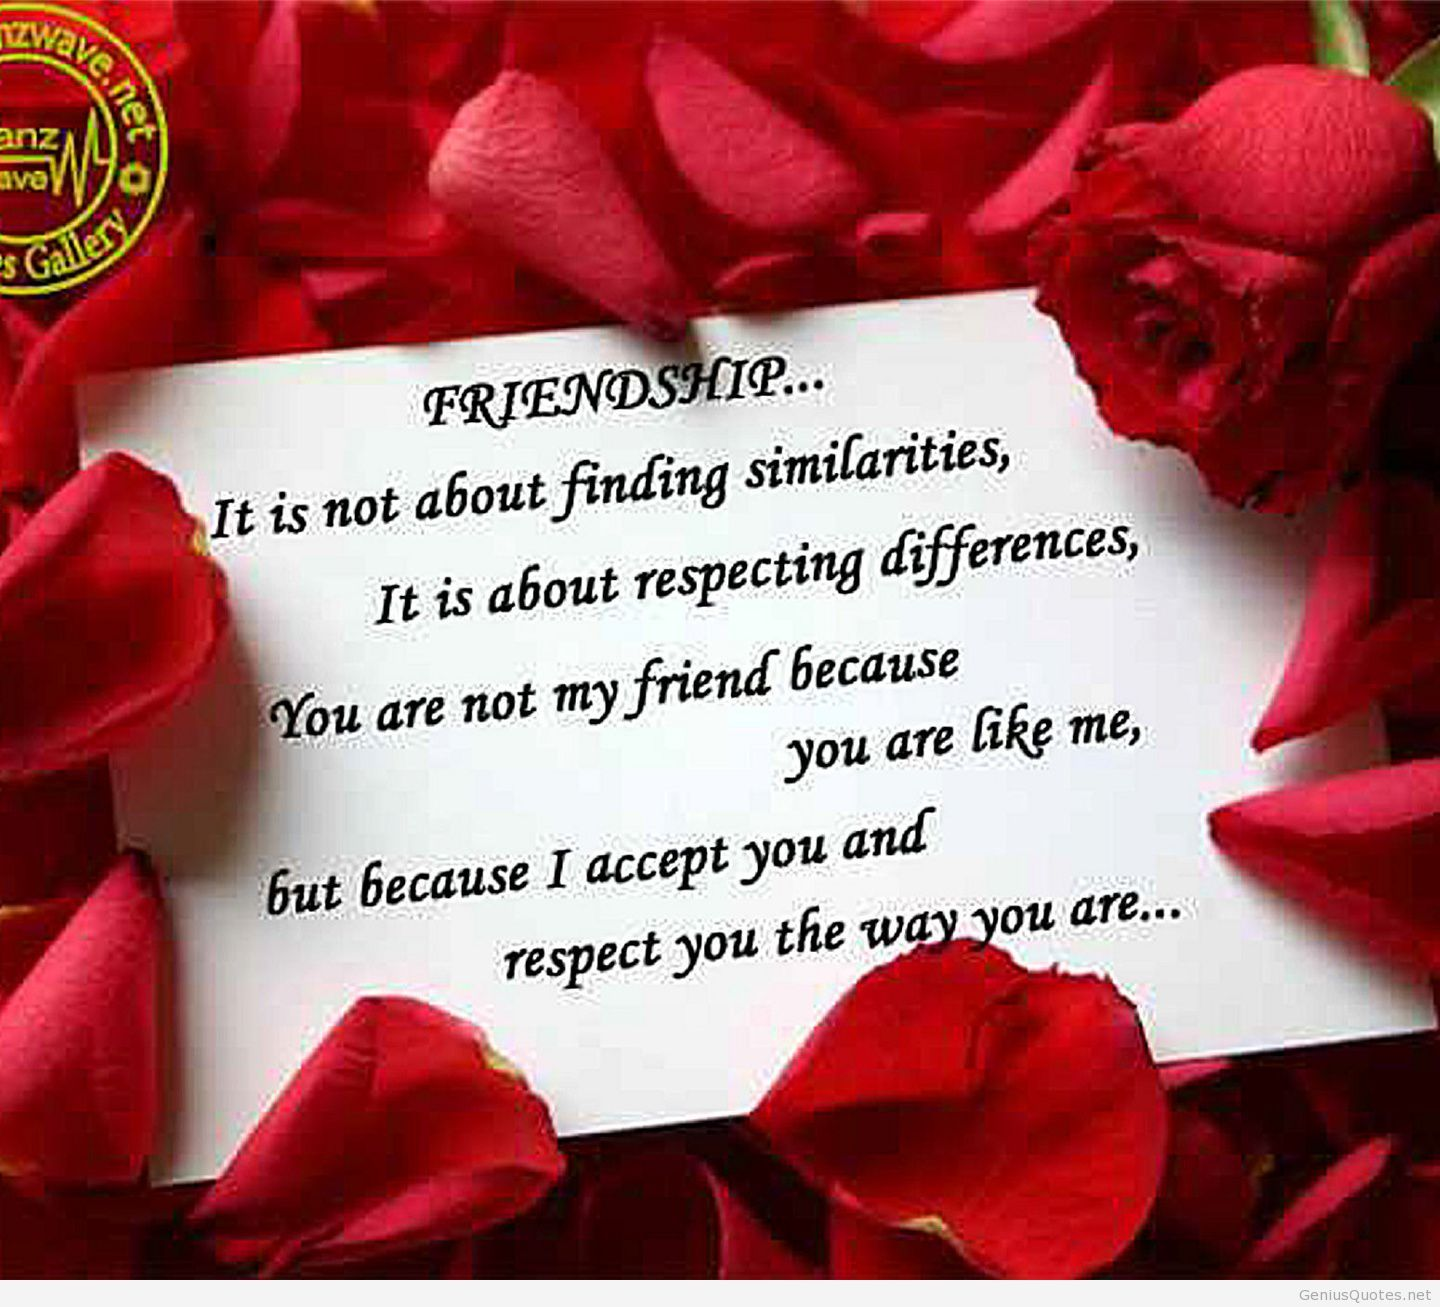 Friendship love quote wallpaper 2014 | Sayings | Pinterest ...